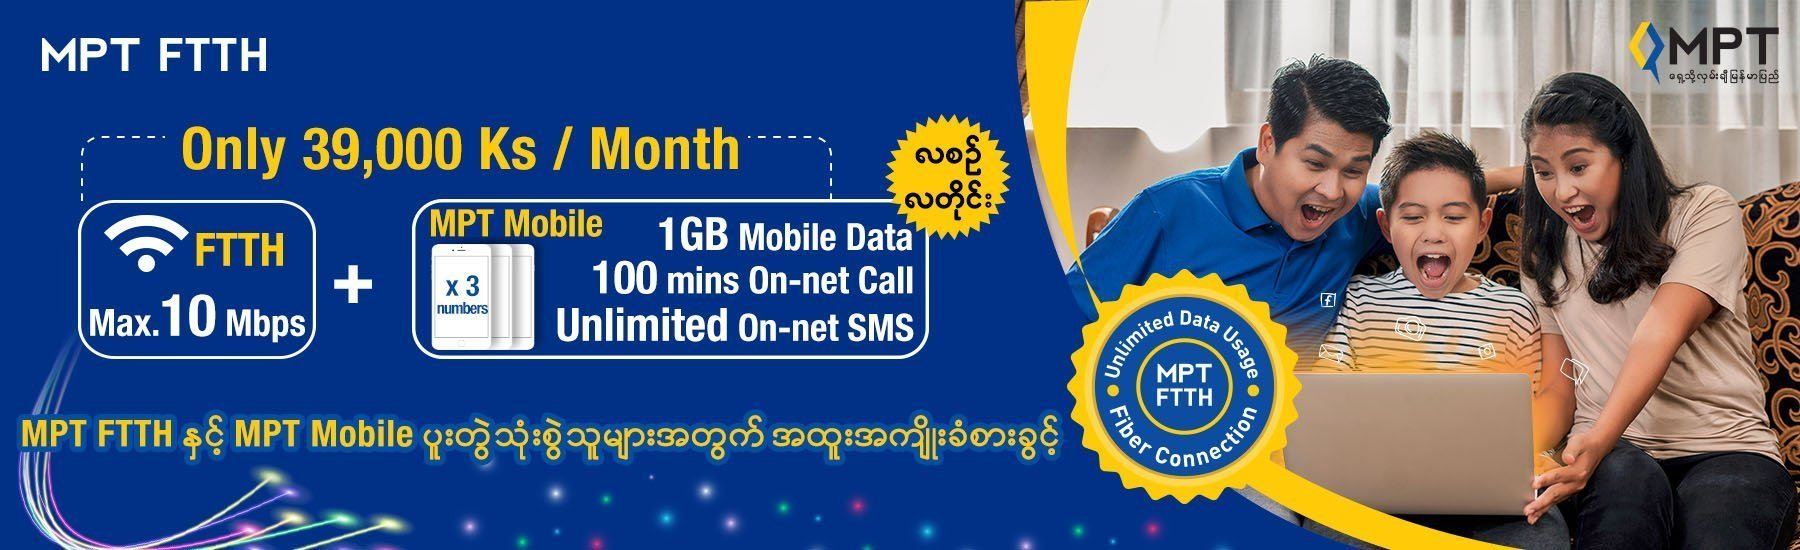 FTTH MPT 4G Mobile Data Myanmar